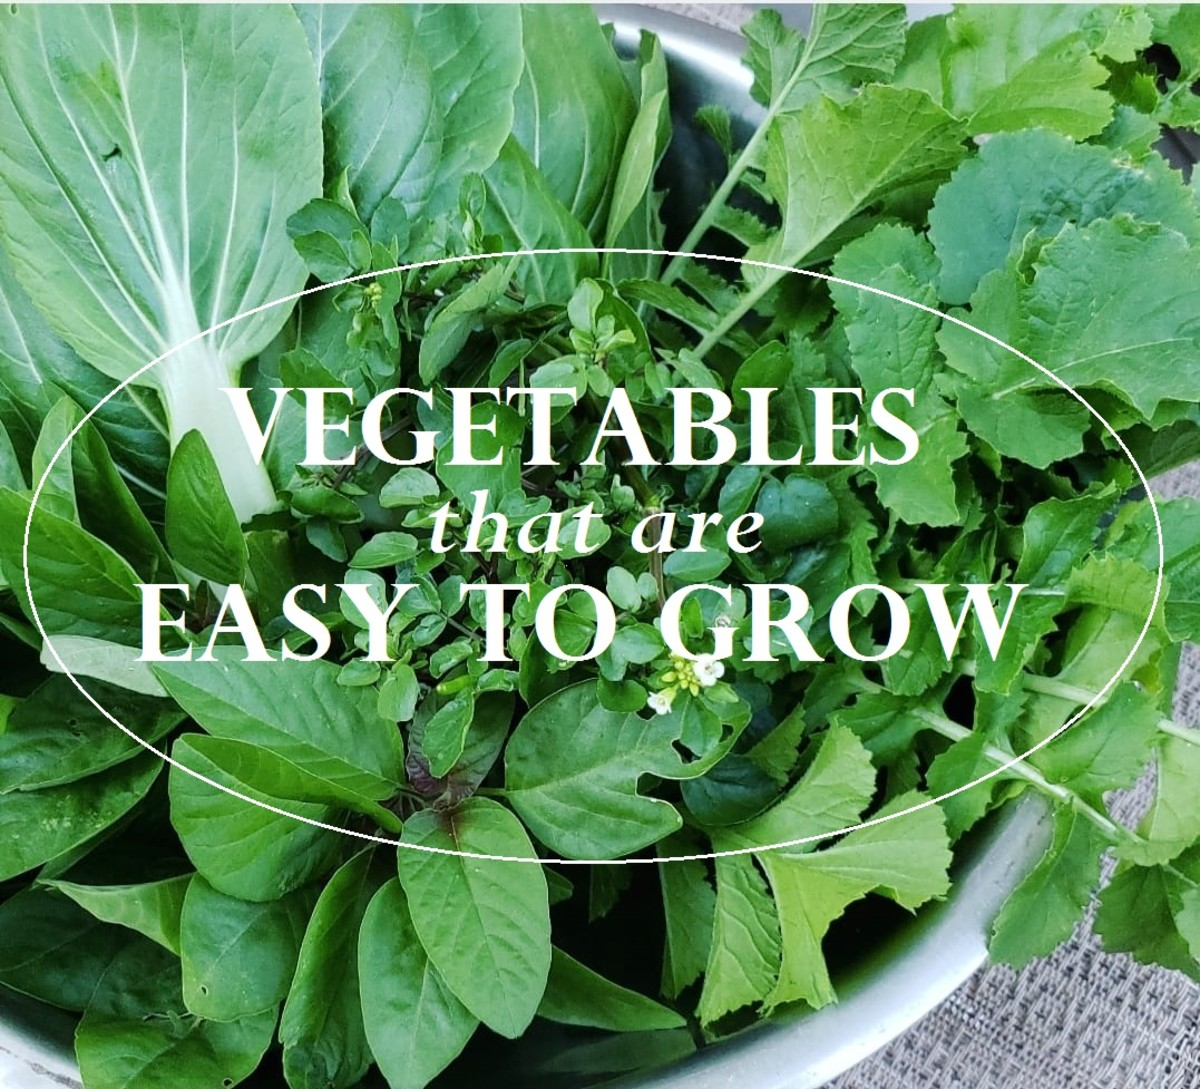 7 Easy-to-Grow Vegetables You Need to Add to Your Veggie Garden